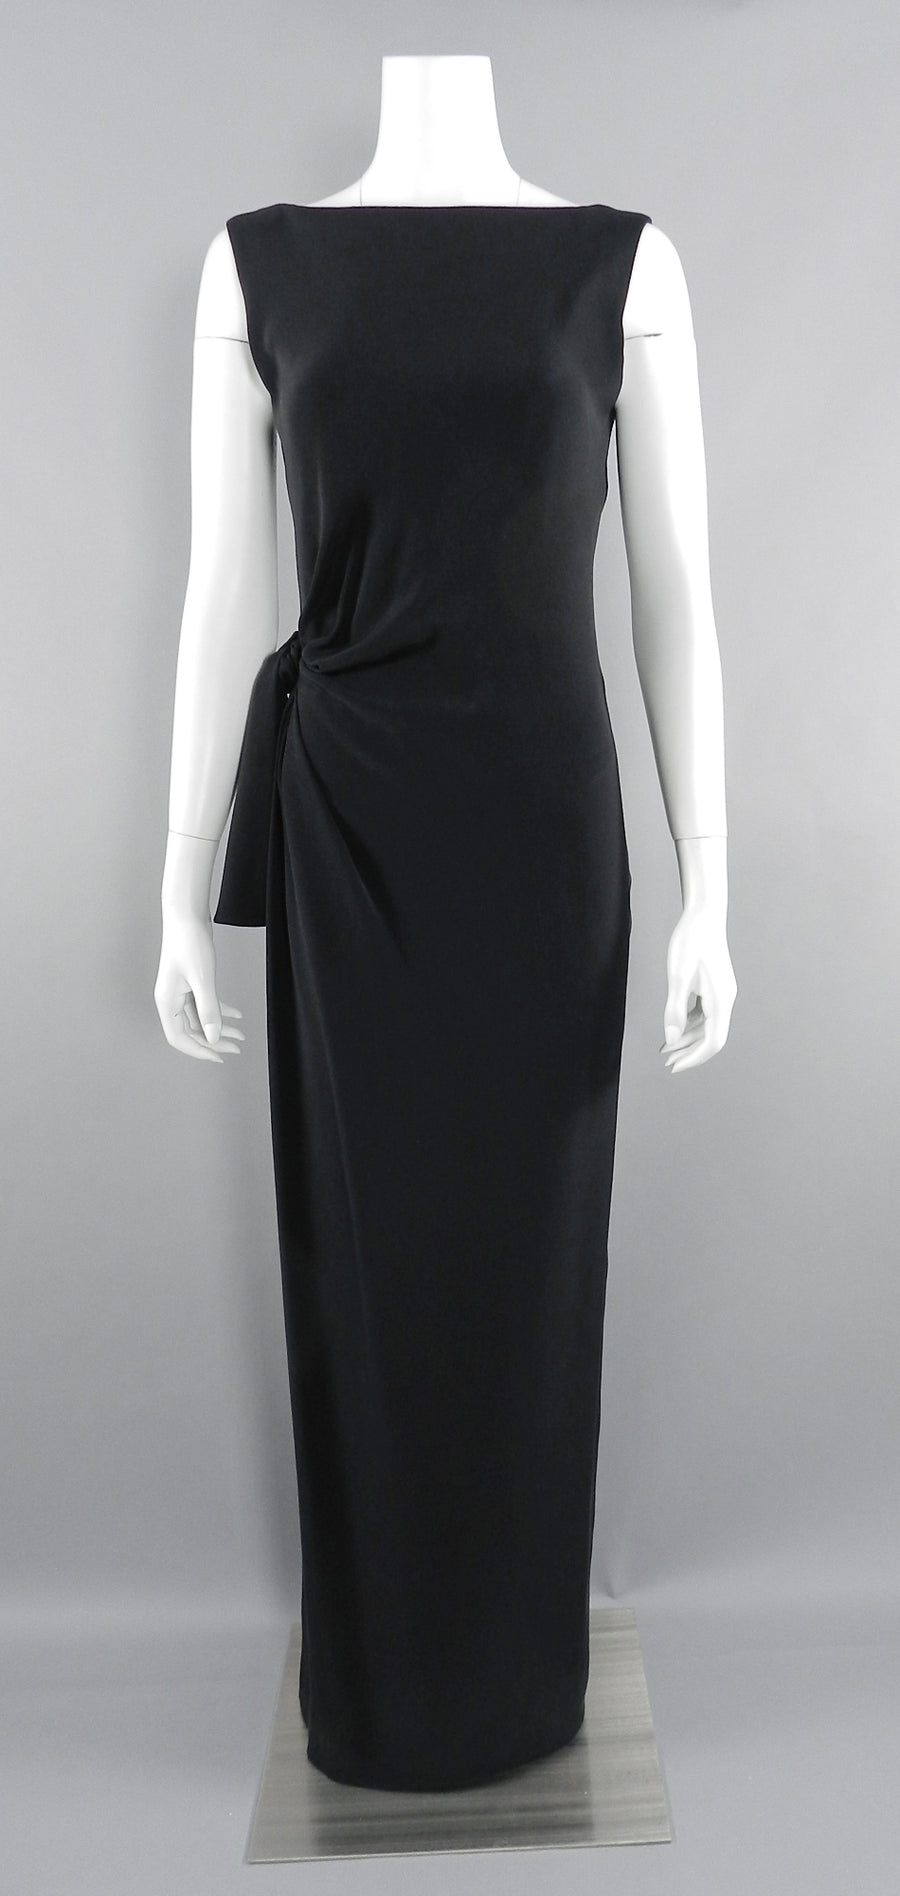 Yves Saint Laurent Vintage AW 1998 Haute Couture Black Low Back Evening Gown